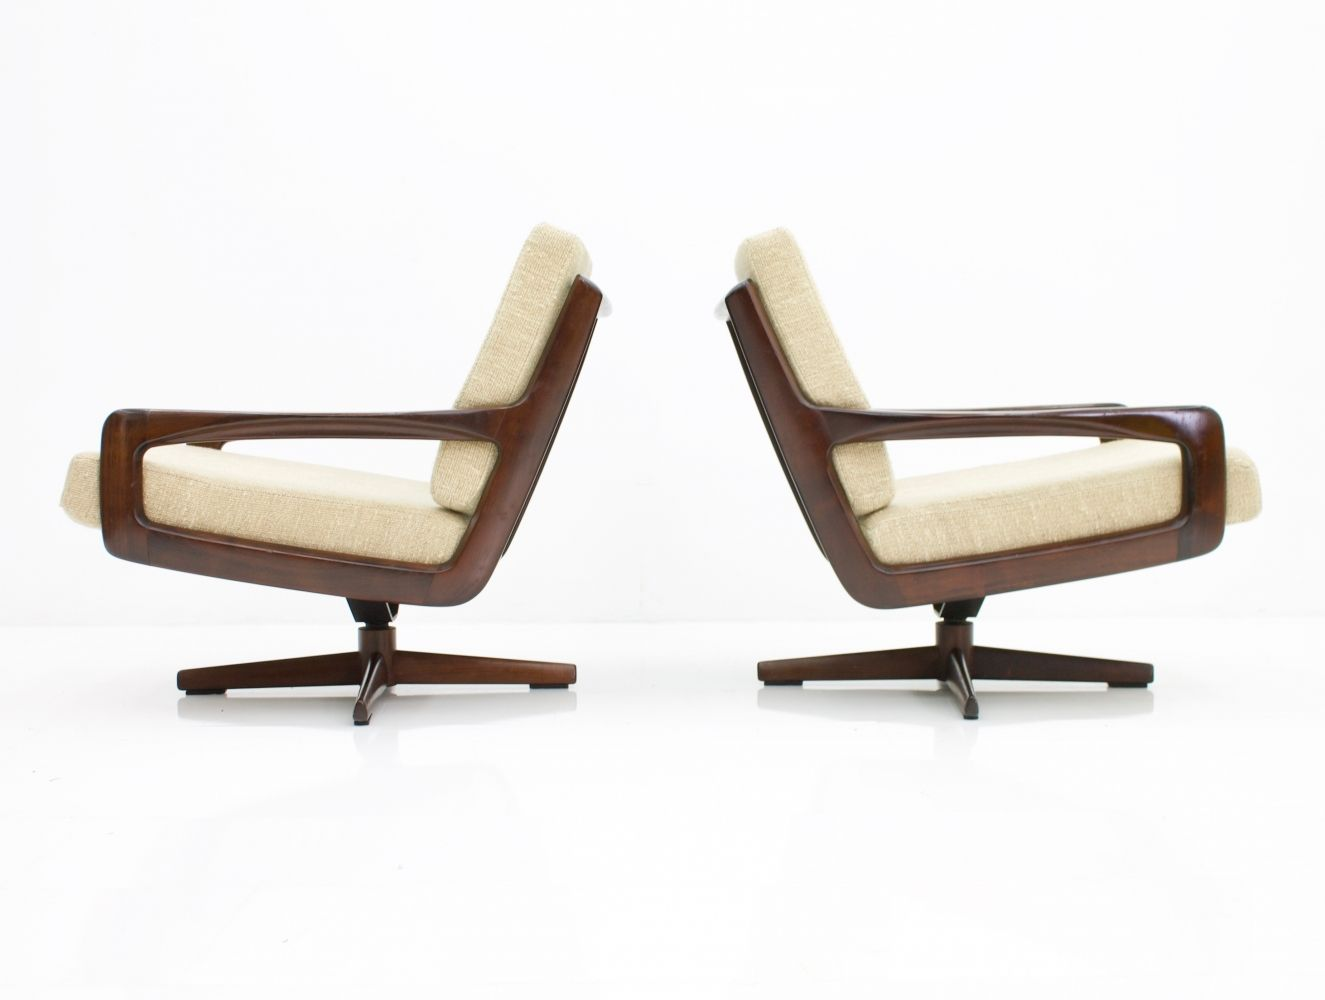 Pair Of Swivel Chairs By Eugen Schmidt Soloform 1960s Swivel Chair Chair Chair Design